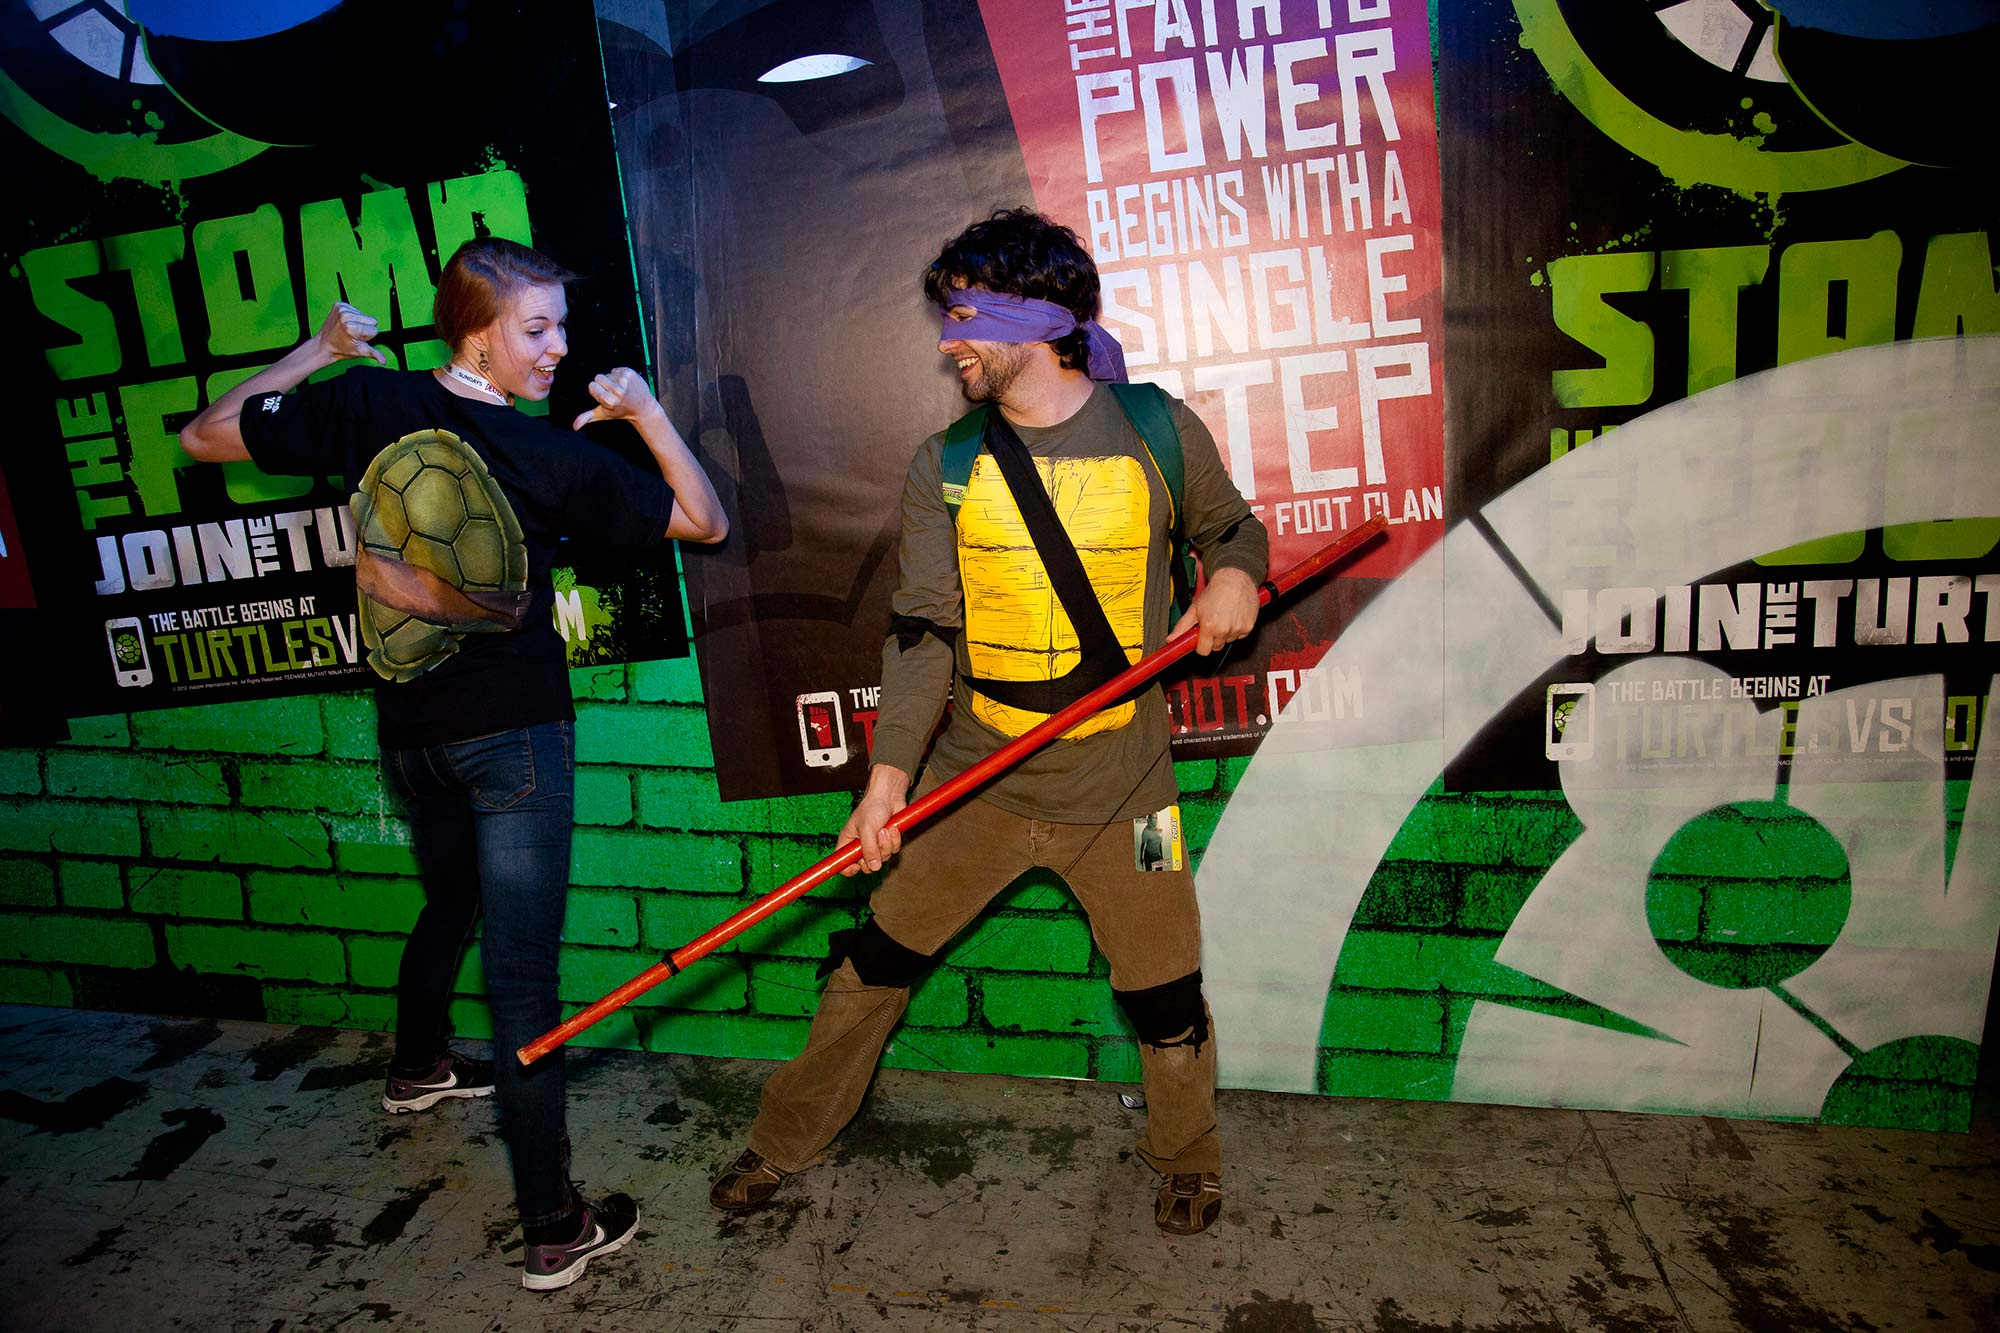 Fans pose inside the TMNT lair at New York Comic Con.